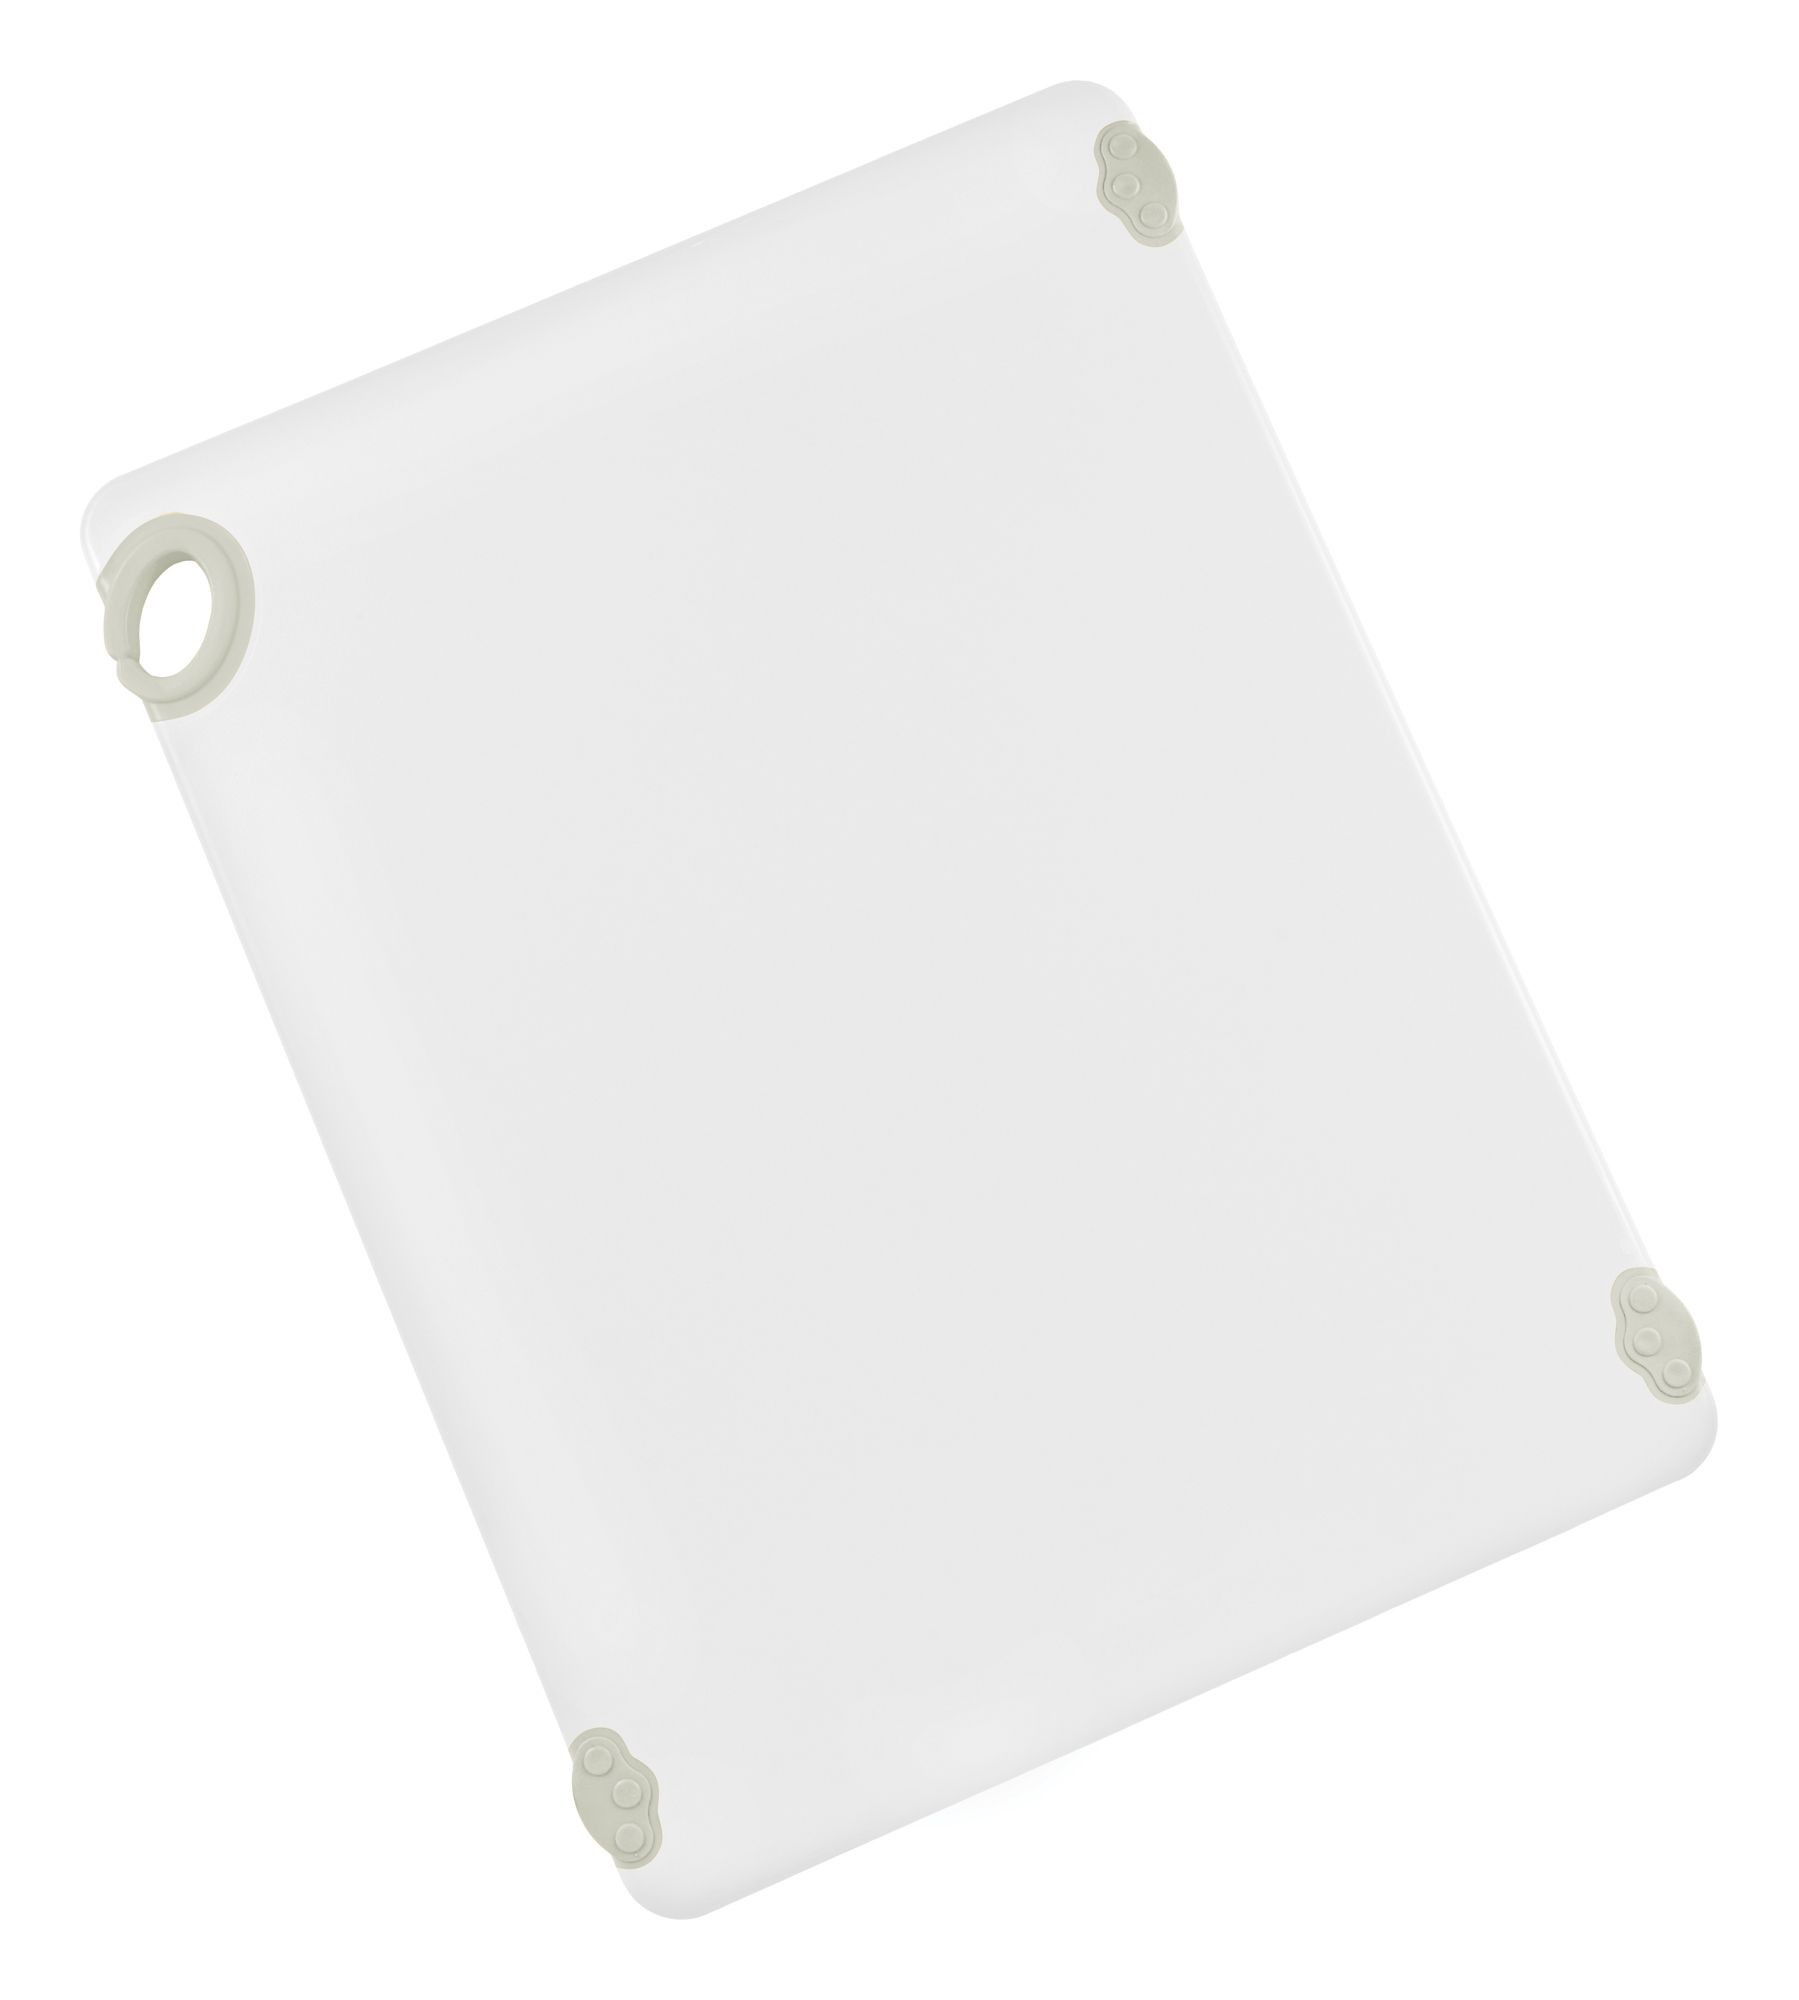 "Winco CBN-1824WT White StatikBoard Cutting Board with Hook, 18"" x 24"" x 1/2"""